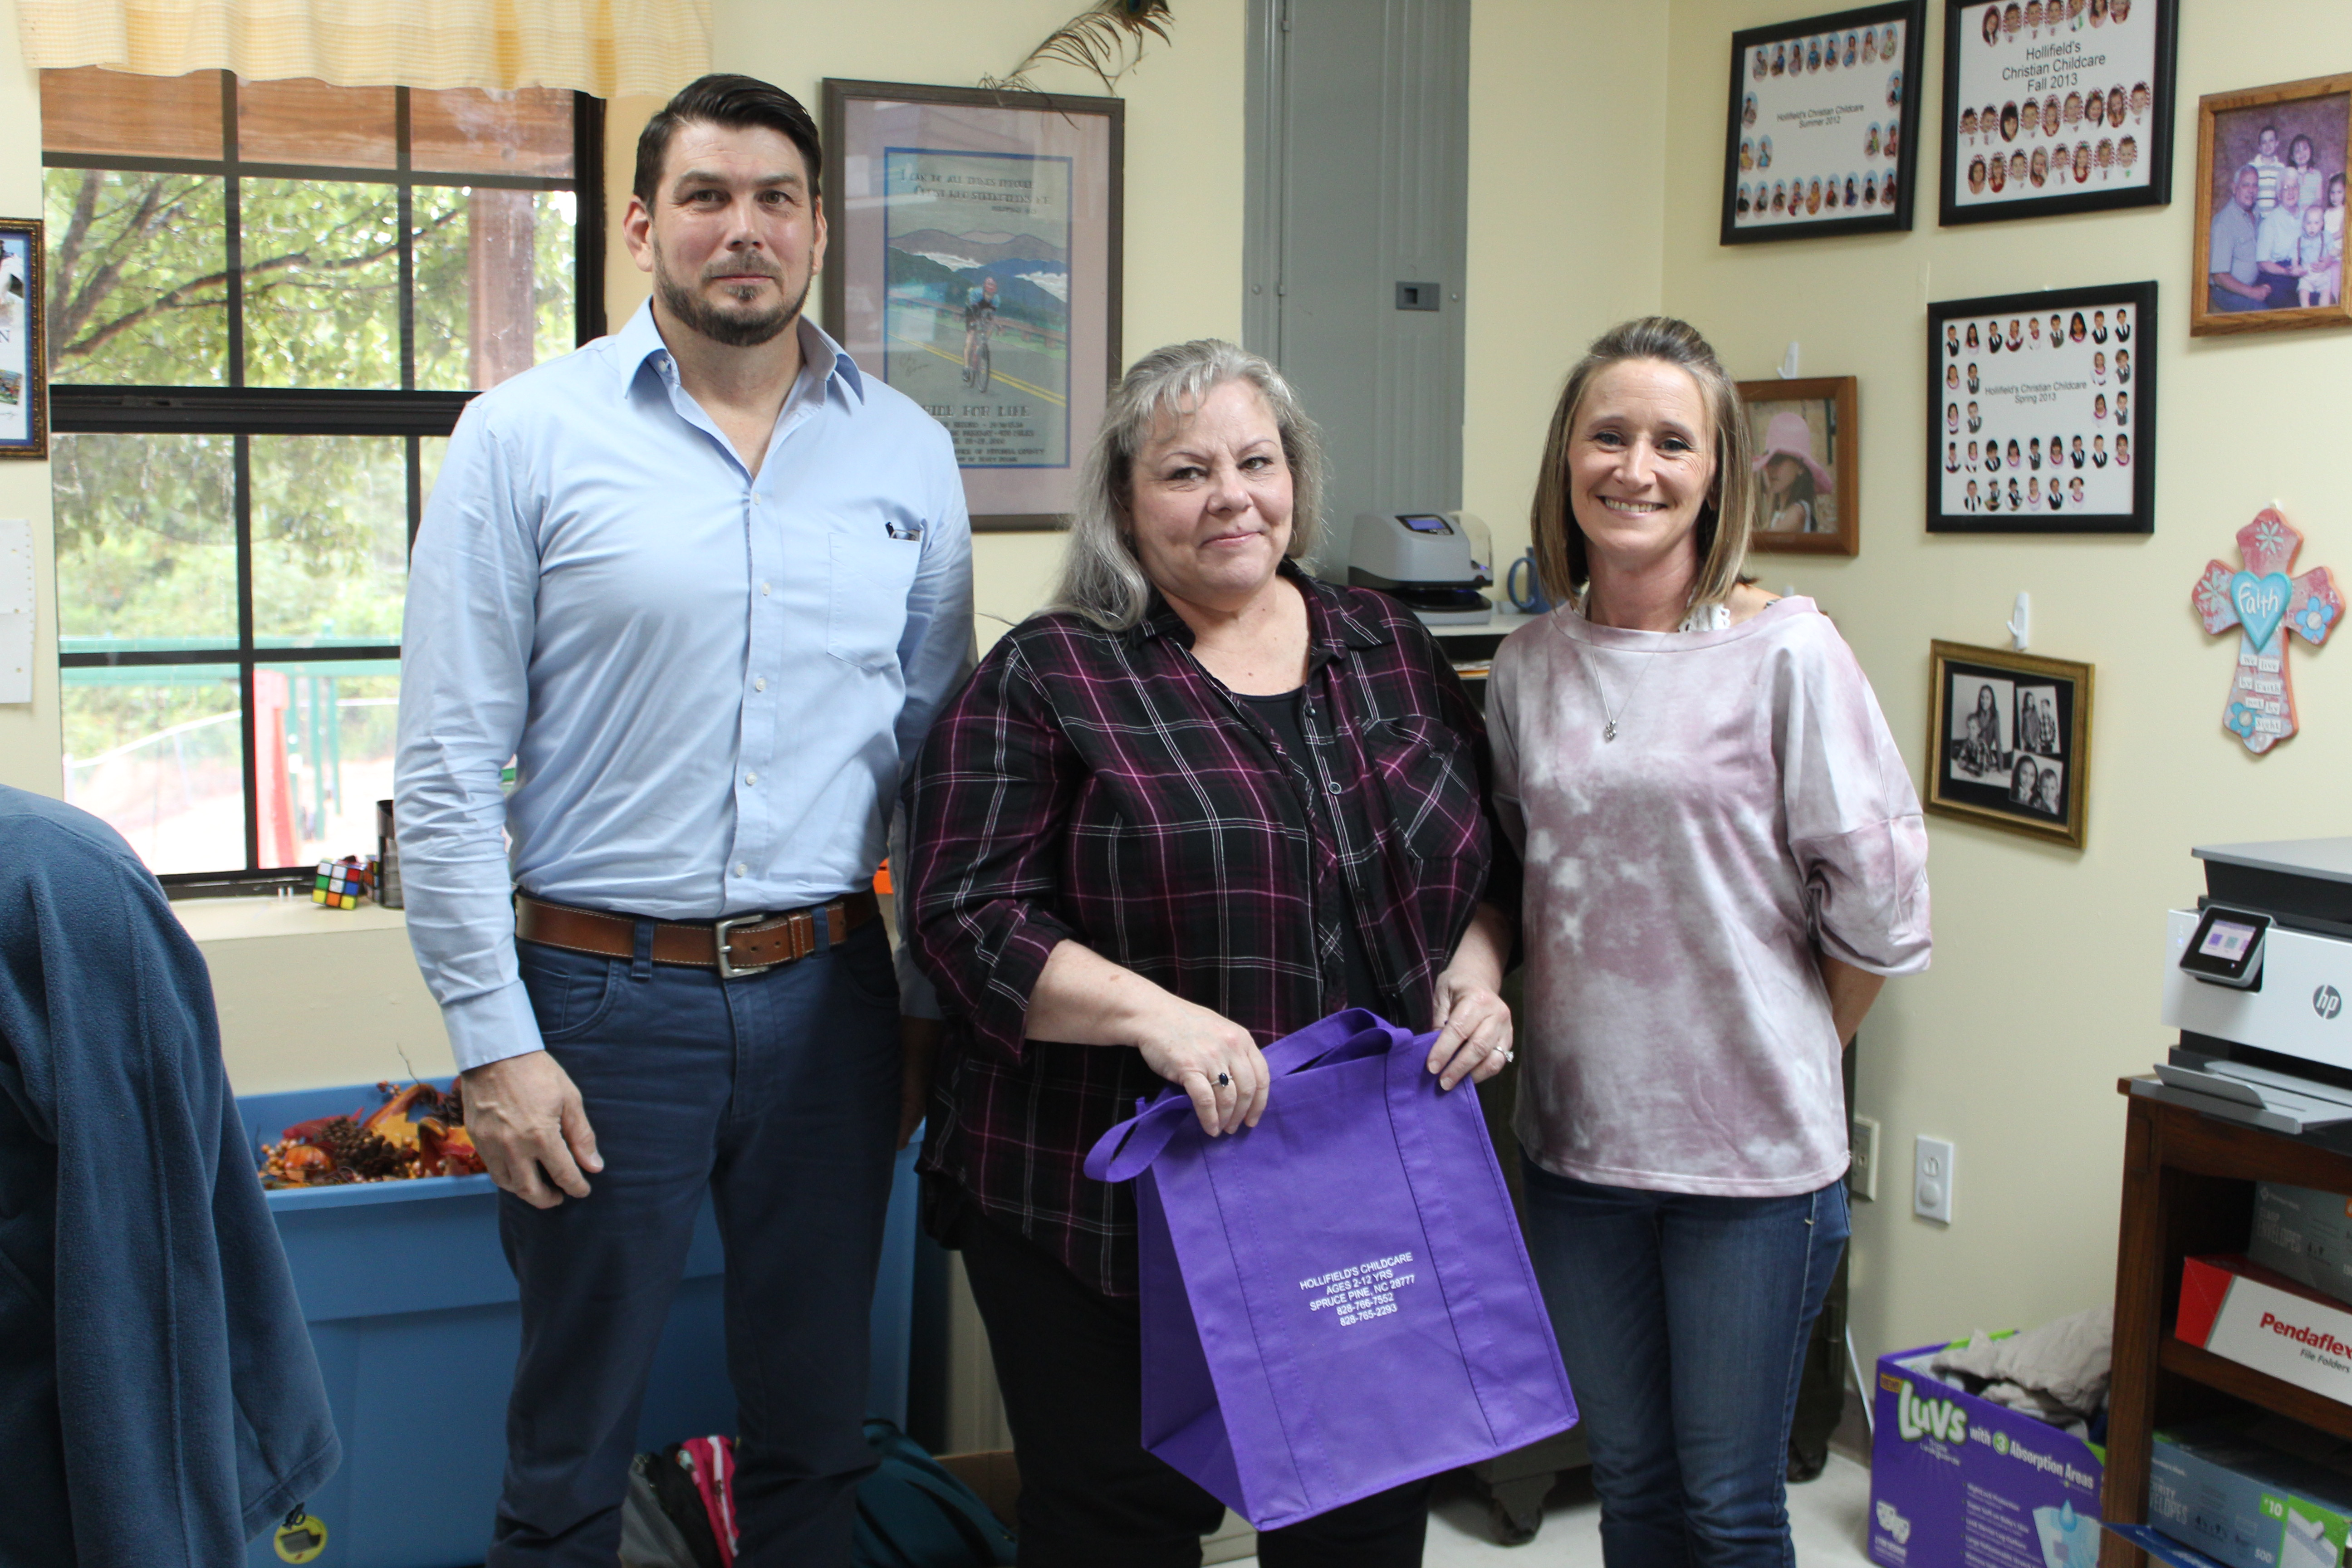 Mitchell County Department of Social Services Program Director Shawn Block, Adoption and Licensing Worker Donna Davis and Hollifield's Christian Child Care Center Director Donna Woody pose for a photo with one of the purple tote bags the children's center donated to DSS. The tote bags will go to children in DSS custody so they don't have to move their belongings in trash bags when they move to a new home. (MNJ photo/Juliana Walker)